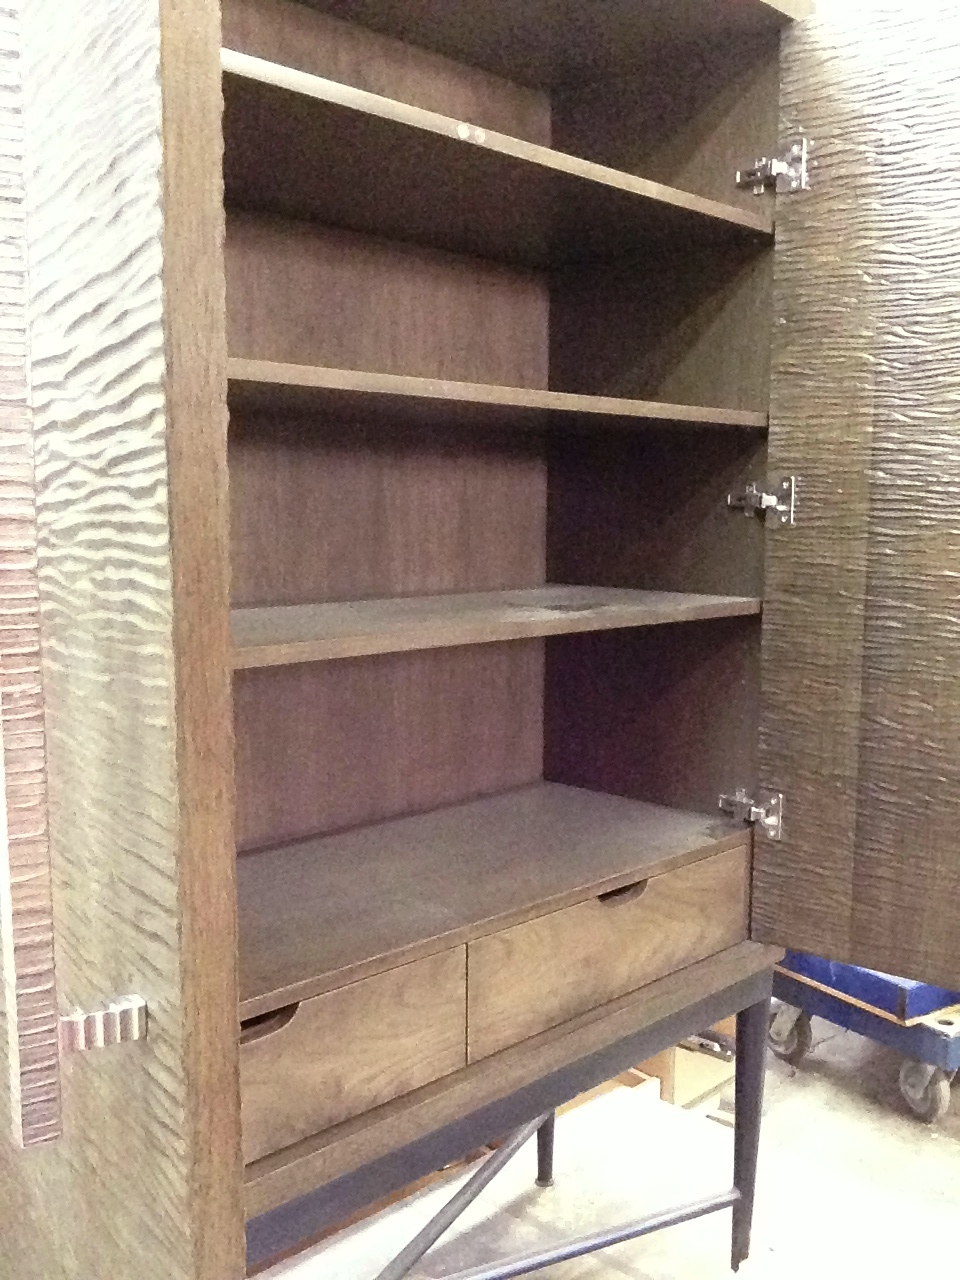 in carving the texture we increased the surface area dramatically and exposed a good deal of end-grain